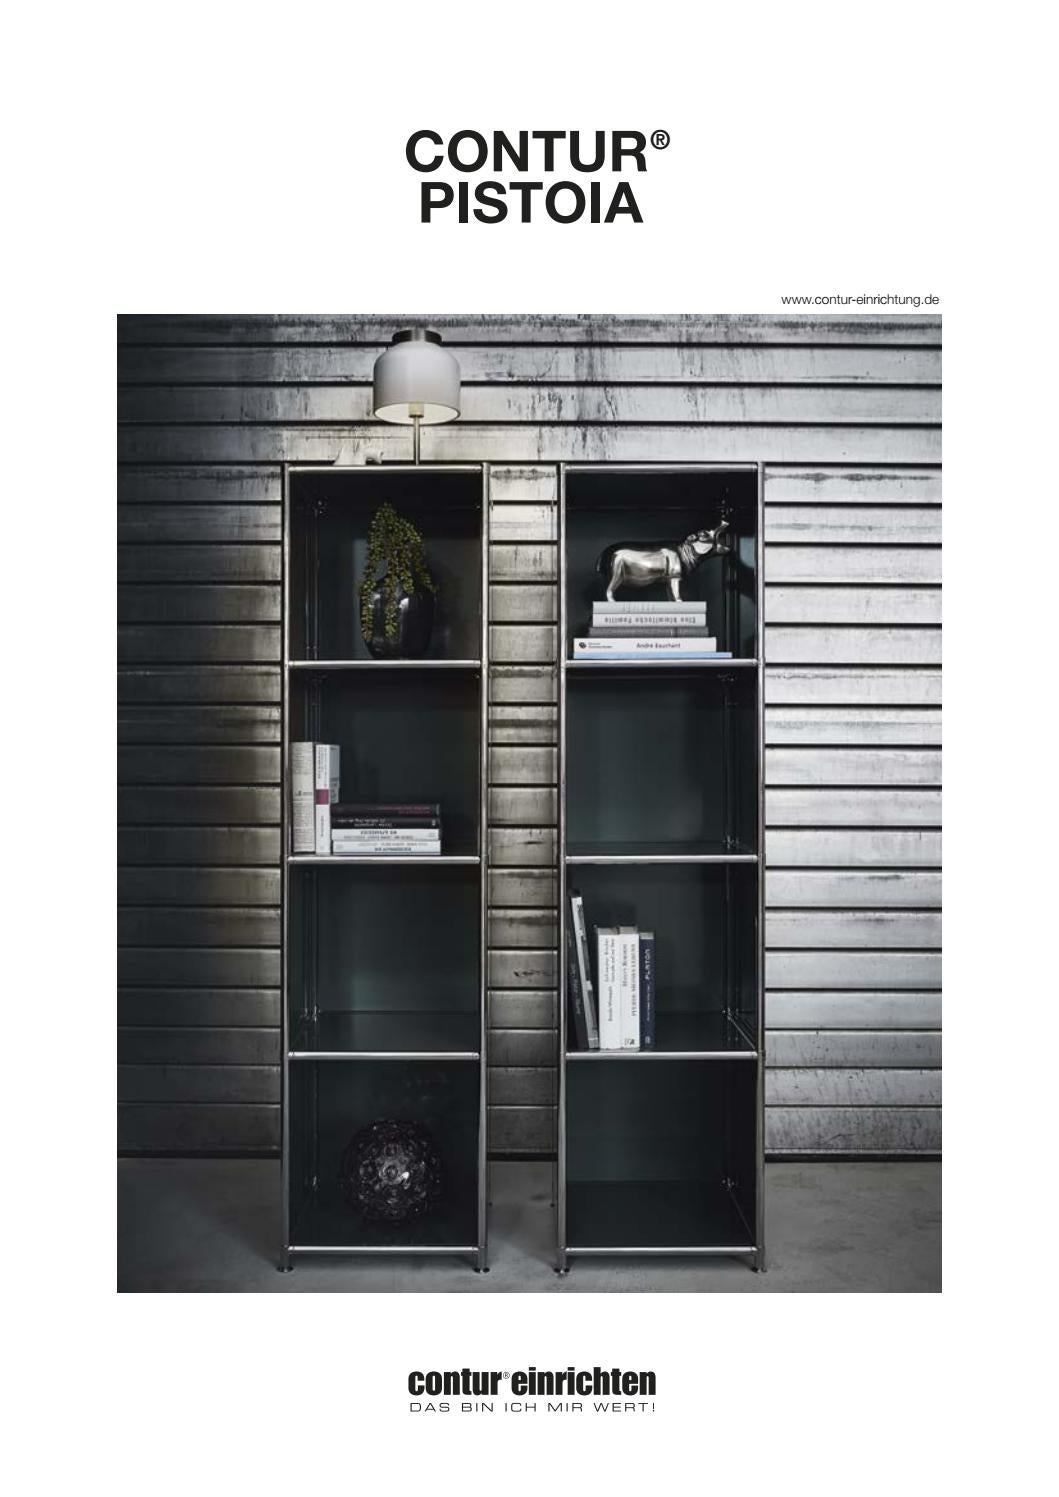 contur emh pistoia 2018 by nld issuu. Black Bedroom Furniture Sets. Home Design Ideas